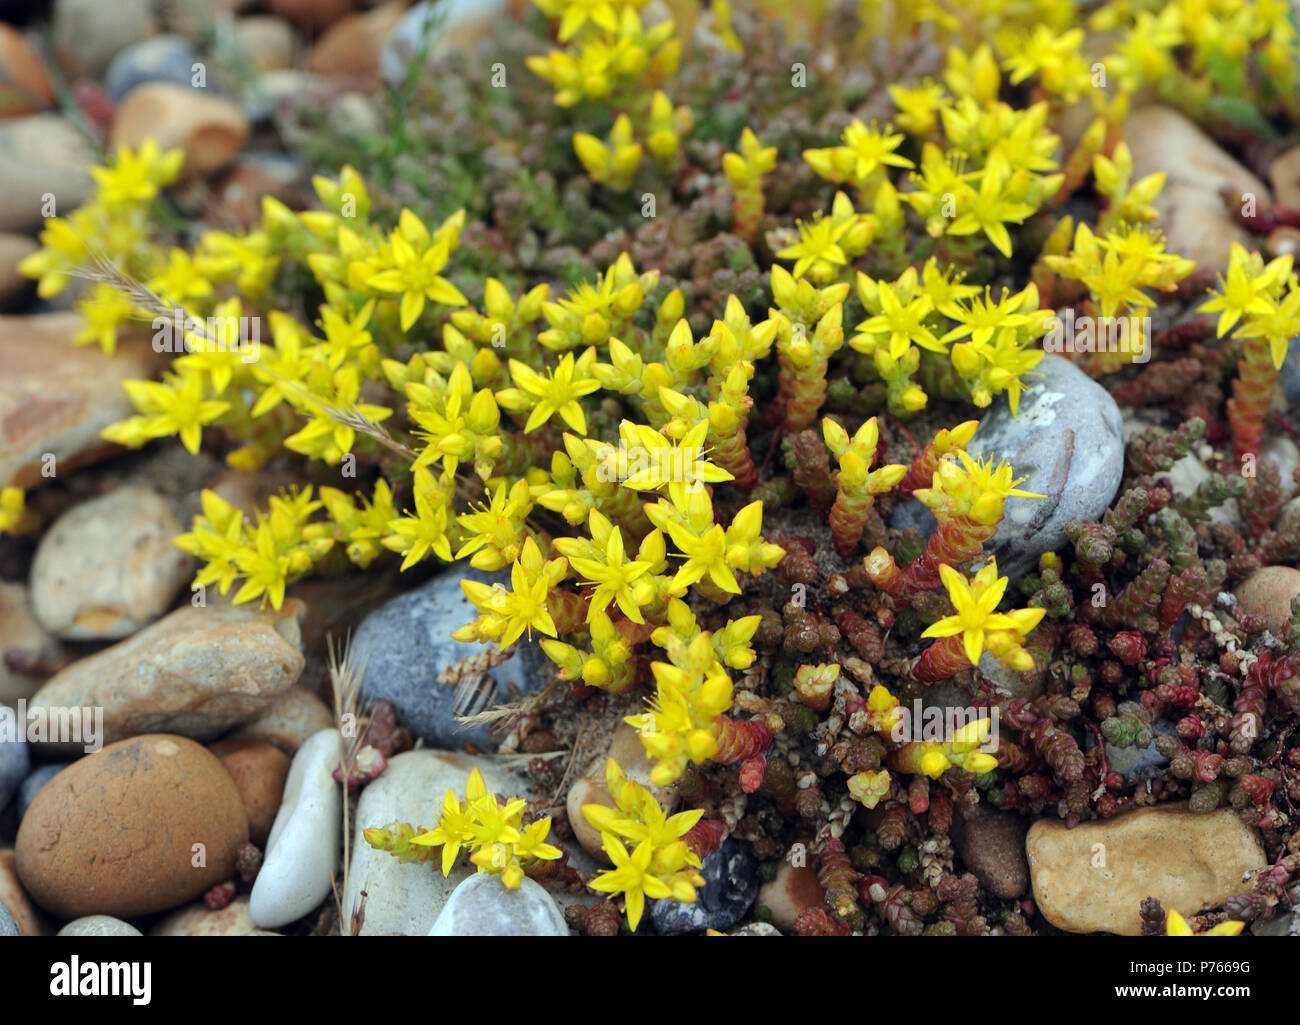 The Yellow Flowers And Green Succulent Stems Of Biting Stonecrop Or